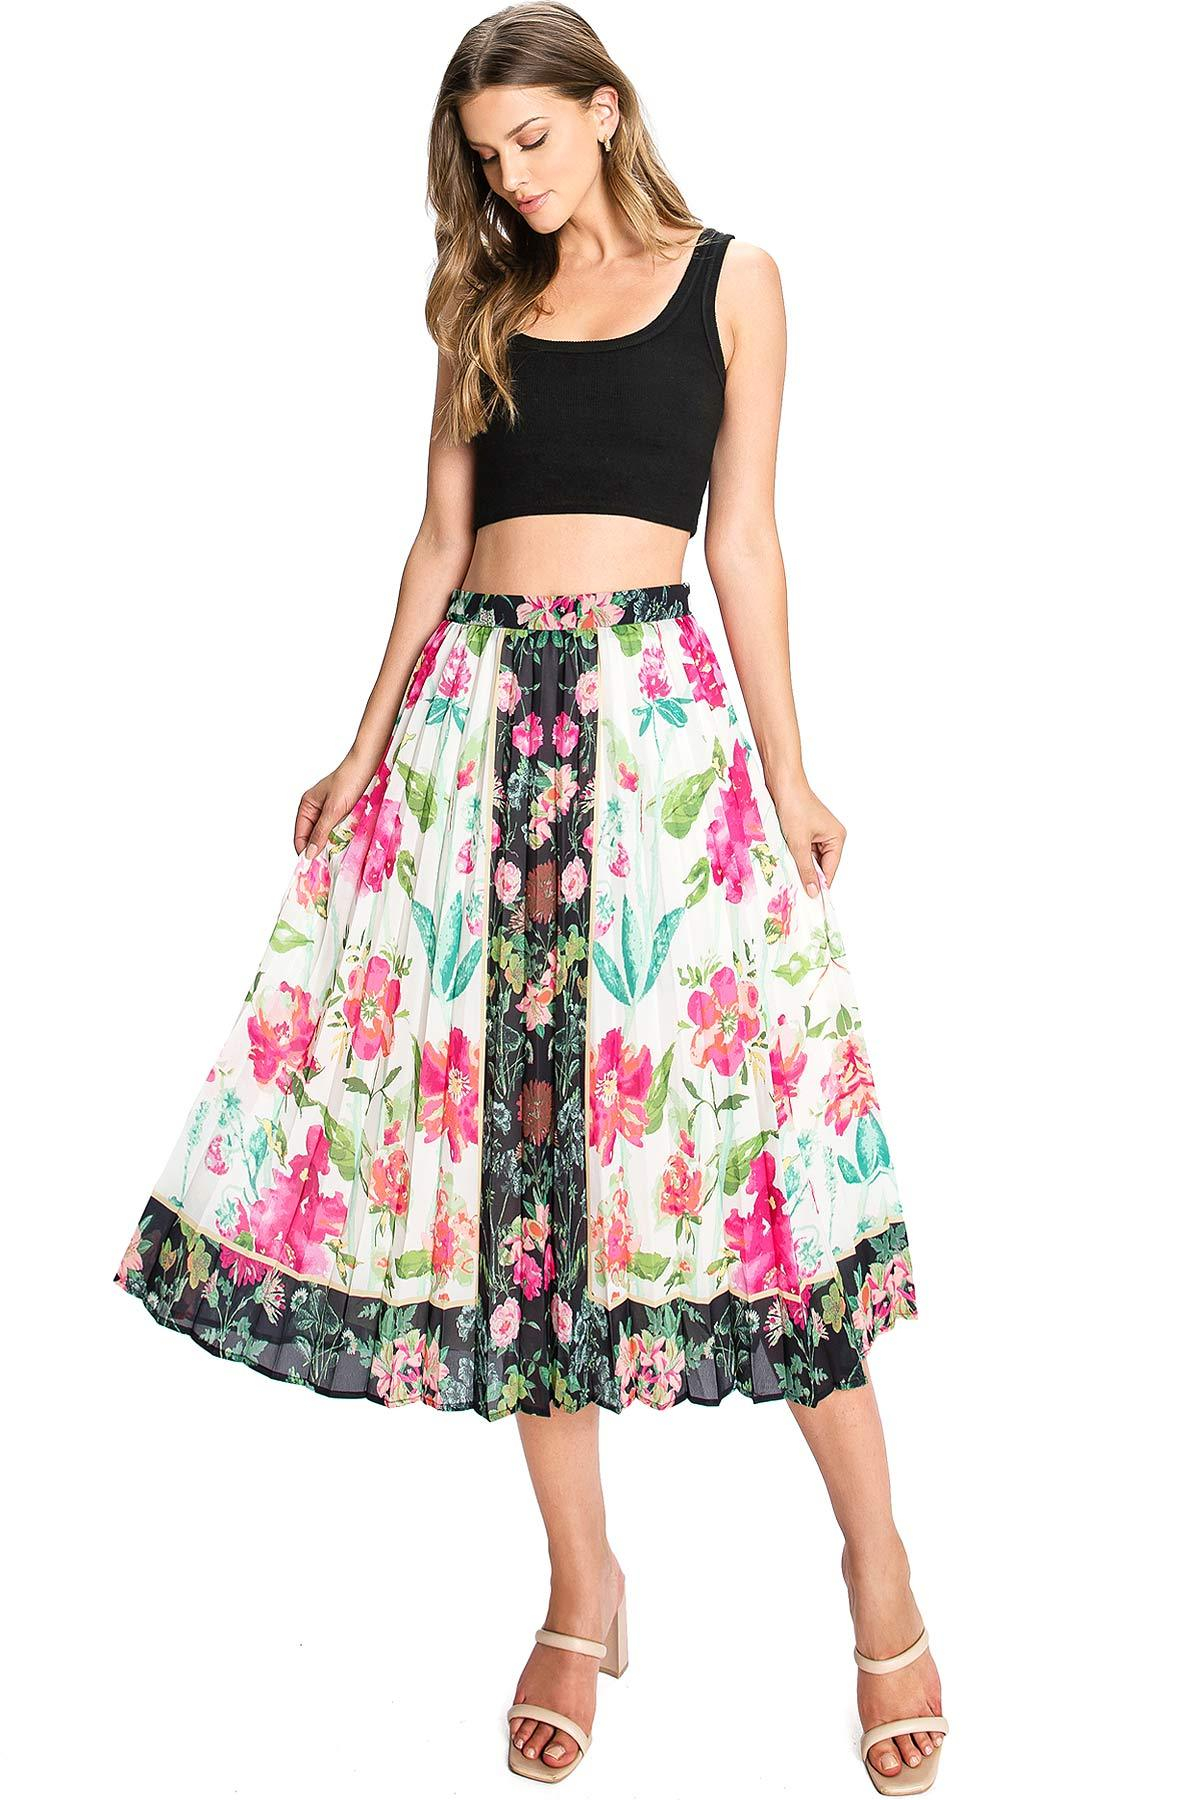 Image of Inverse Floral Pleated Skirt